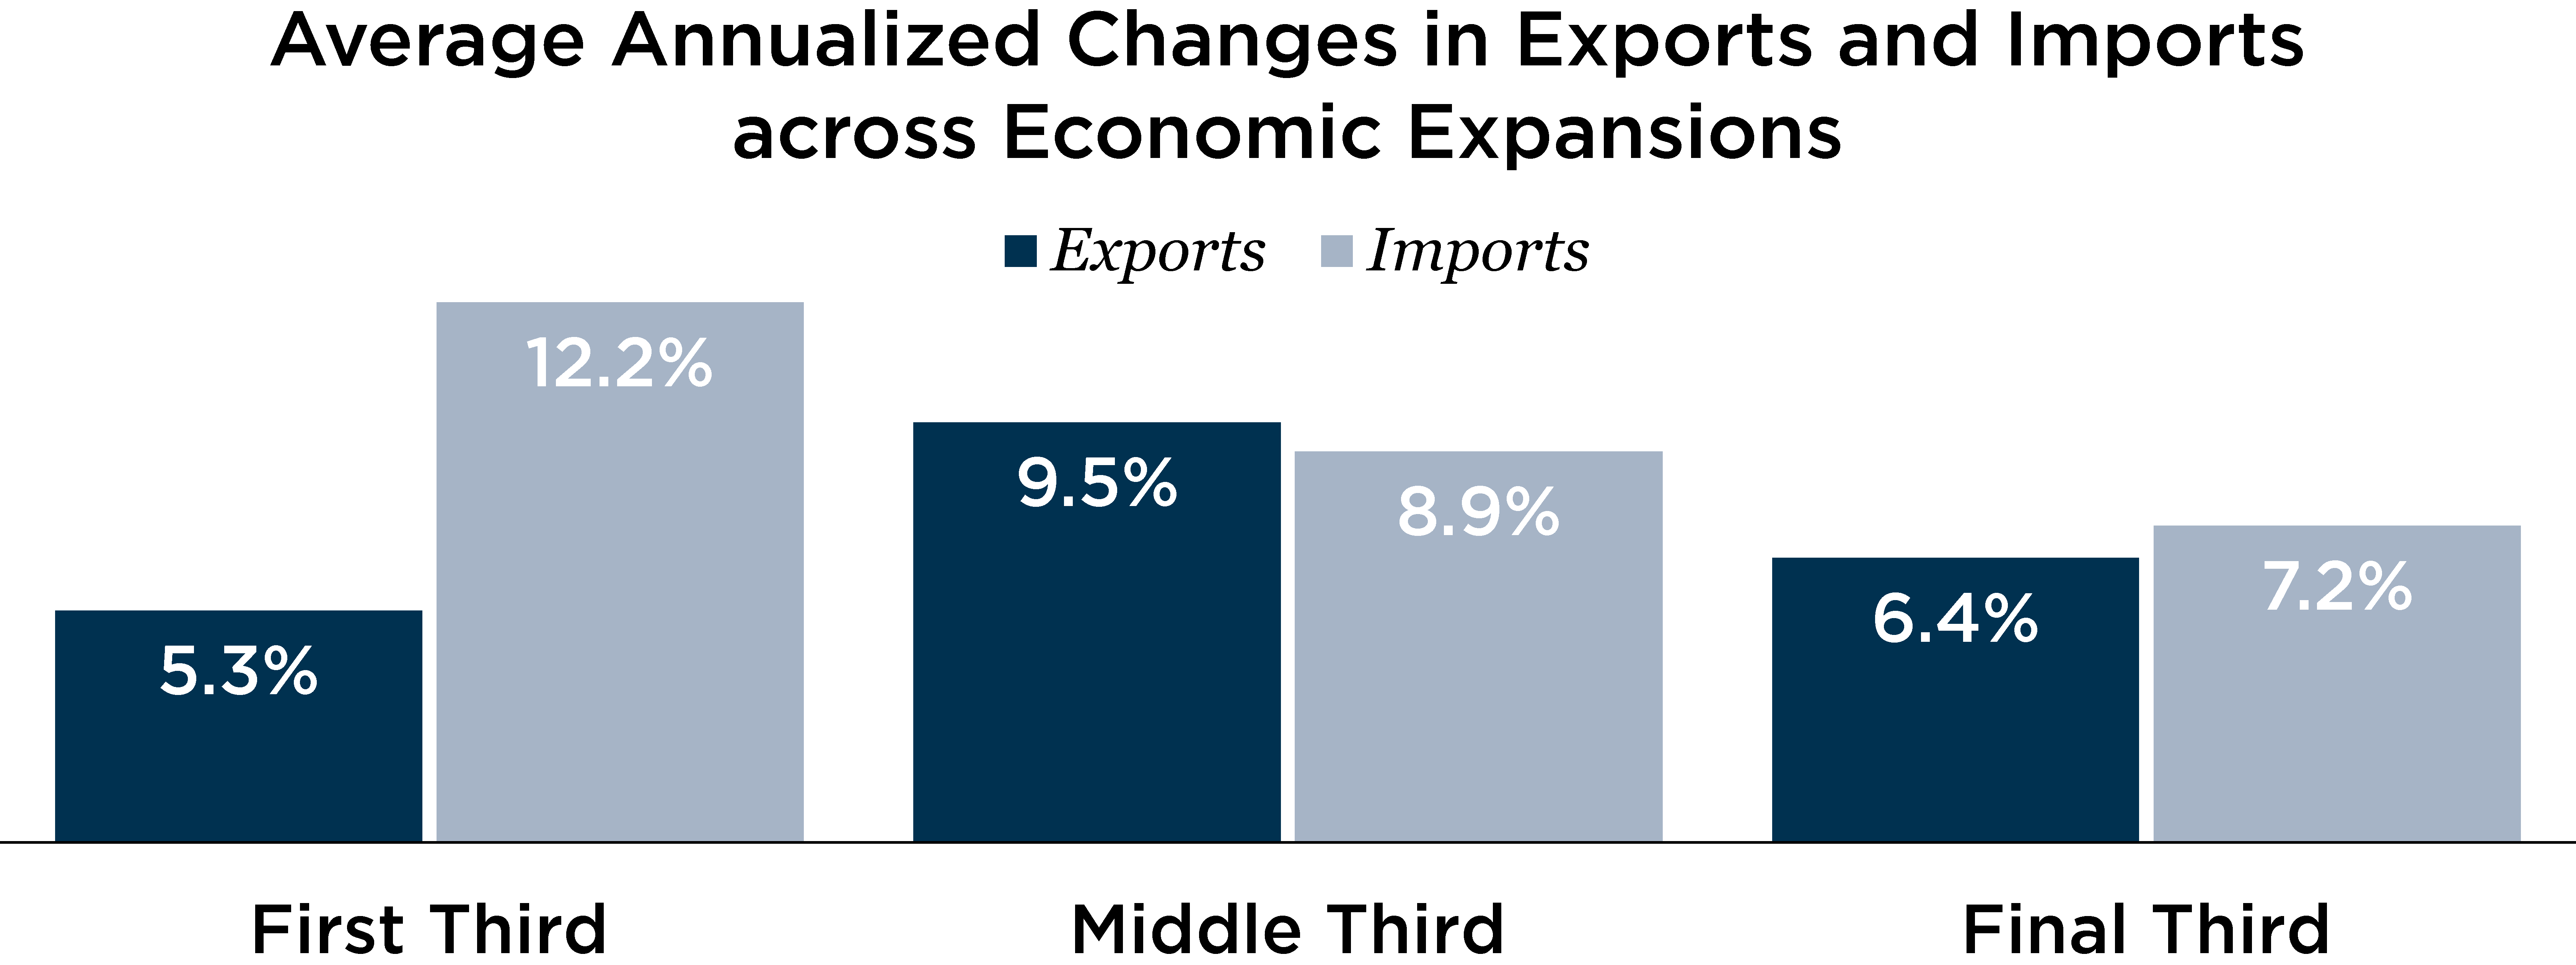 Graph depicting average annualized changes in exports and importsa cross economic expansions